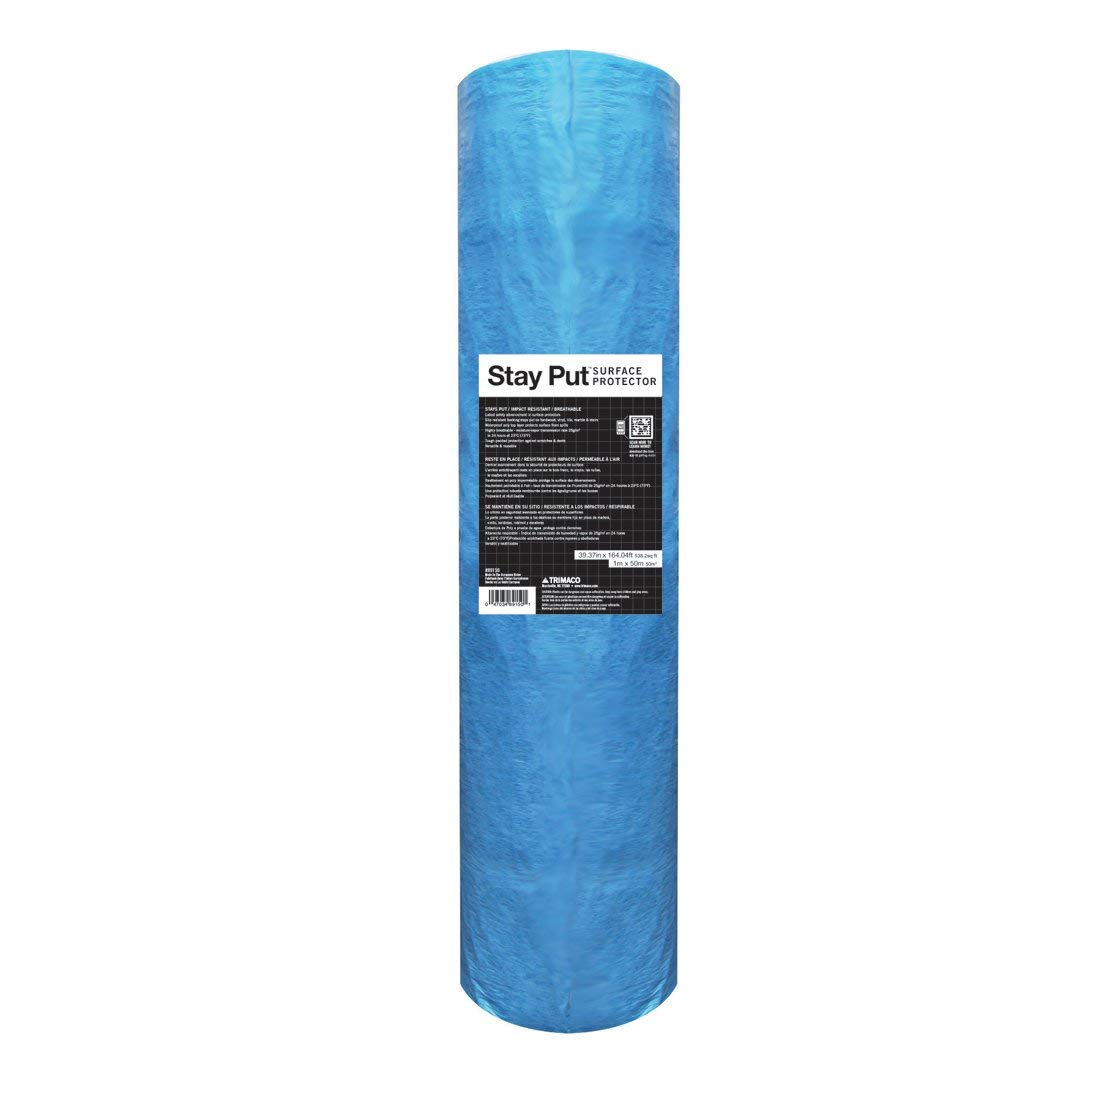 Stay Put Surface Protector, 39.37-inch x 164.04-feet (Renewed)